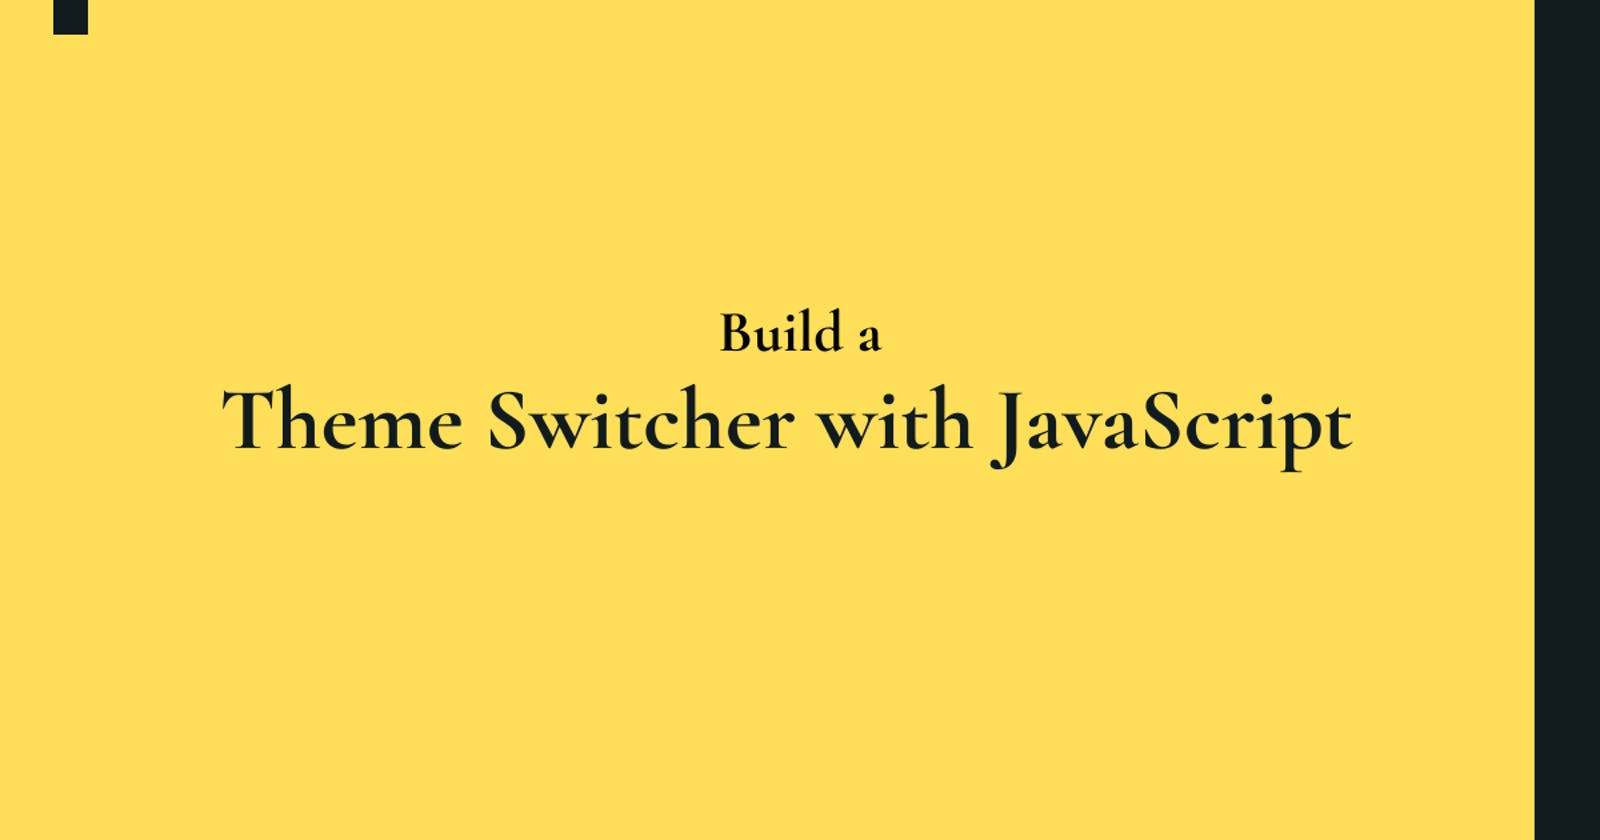 Build a Theme Switcher for Your Website with JavaScript